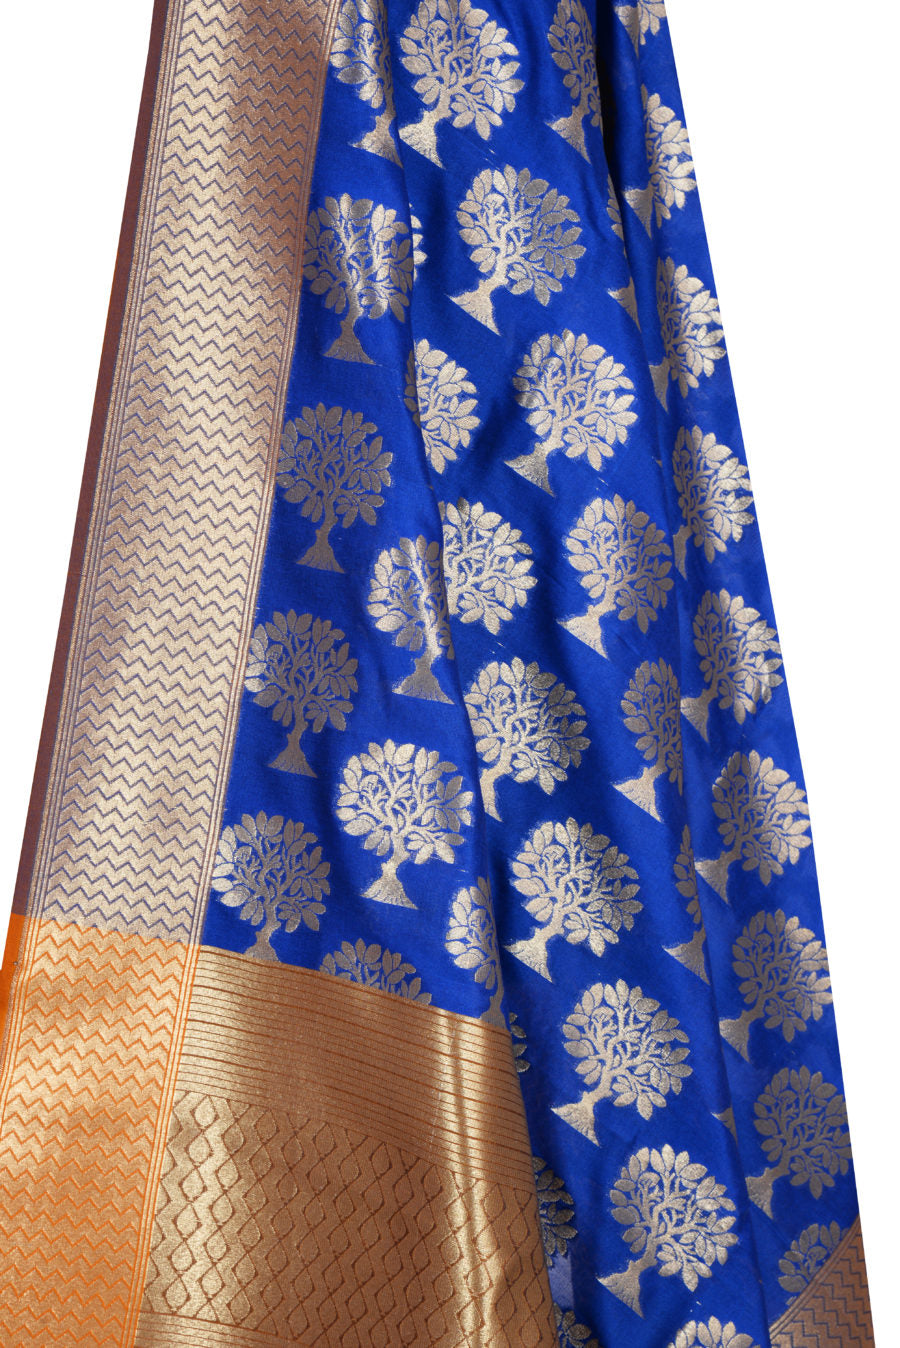 Blue Banarasi Dupatta with tree motifs (2) Close up